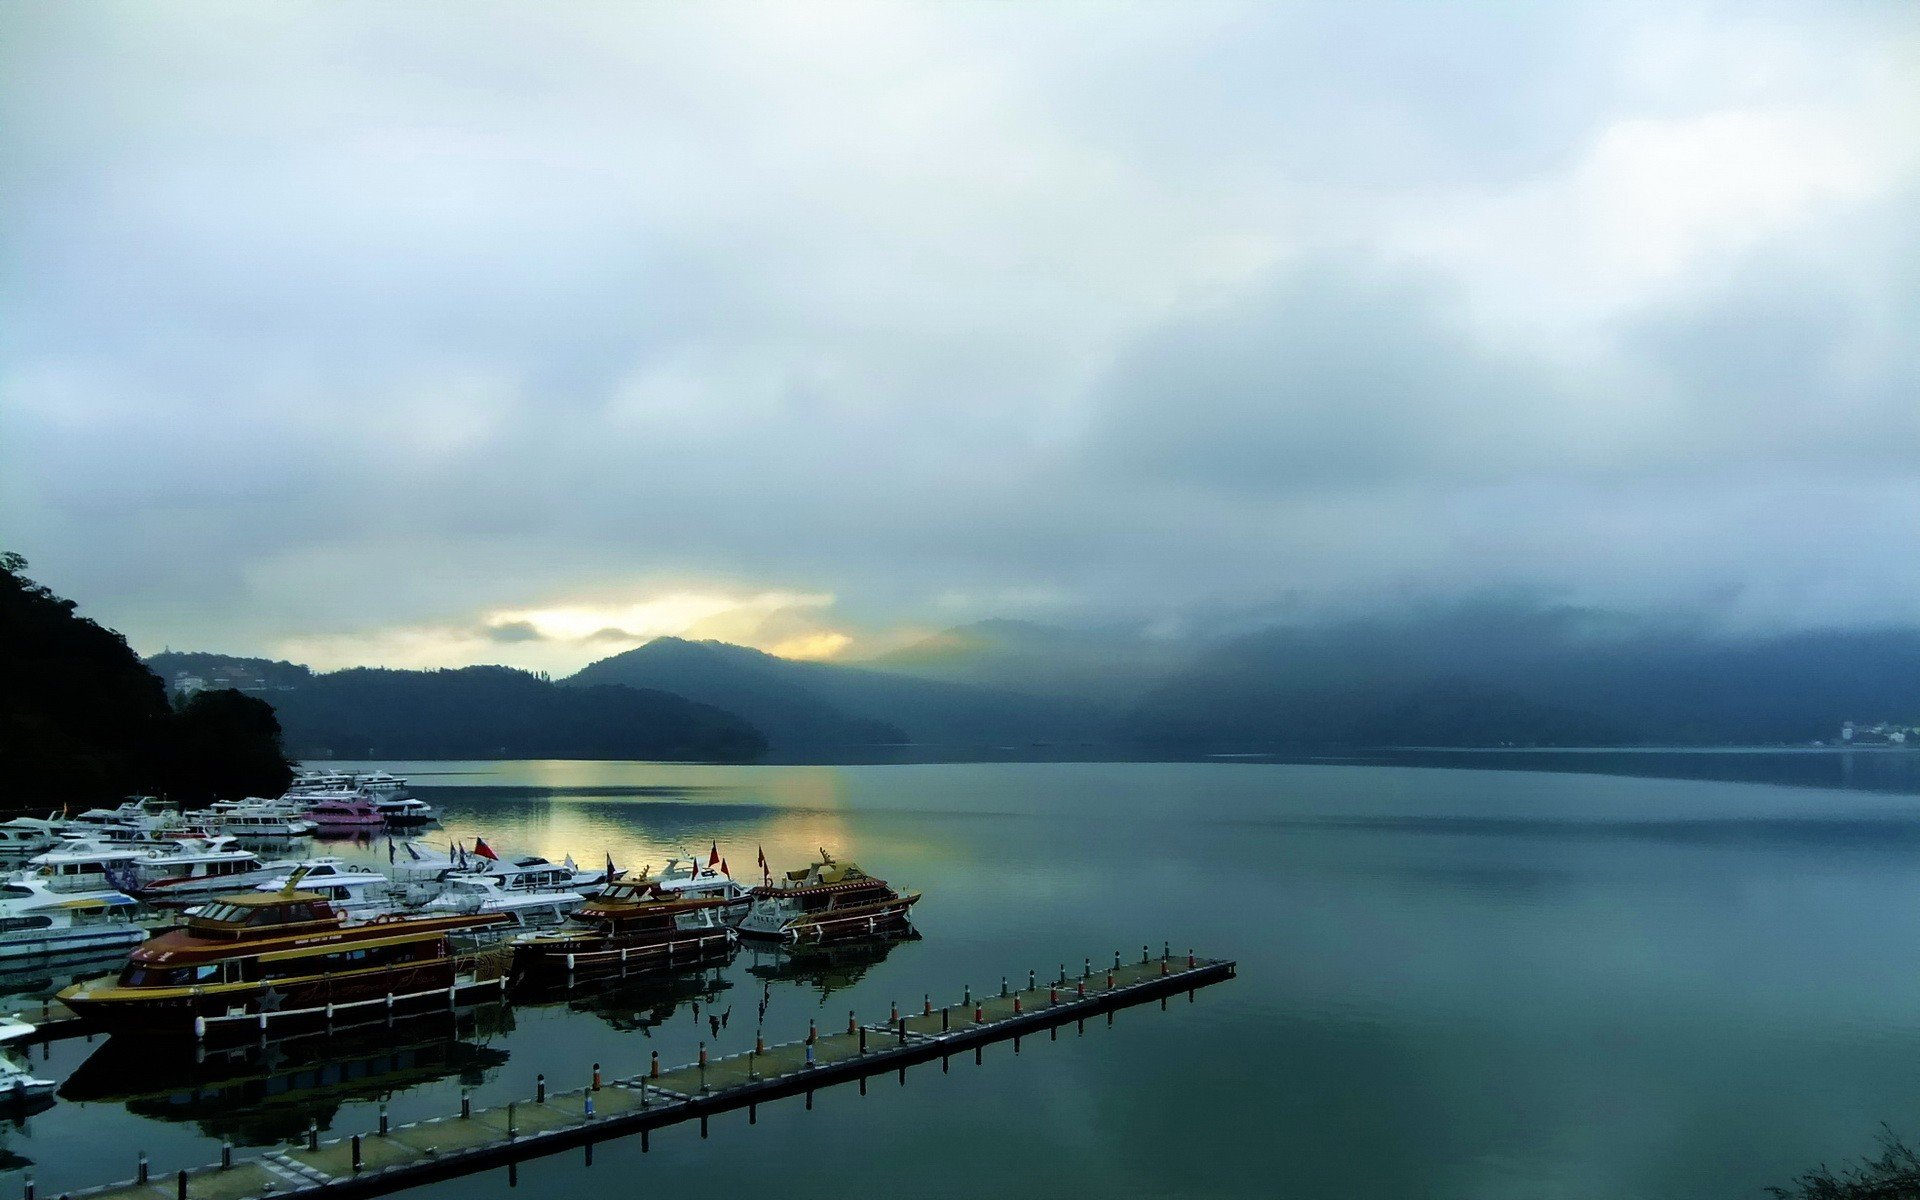 water sunrise mountains clouds landscapes dock ships piers boats lakes port skies